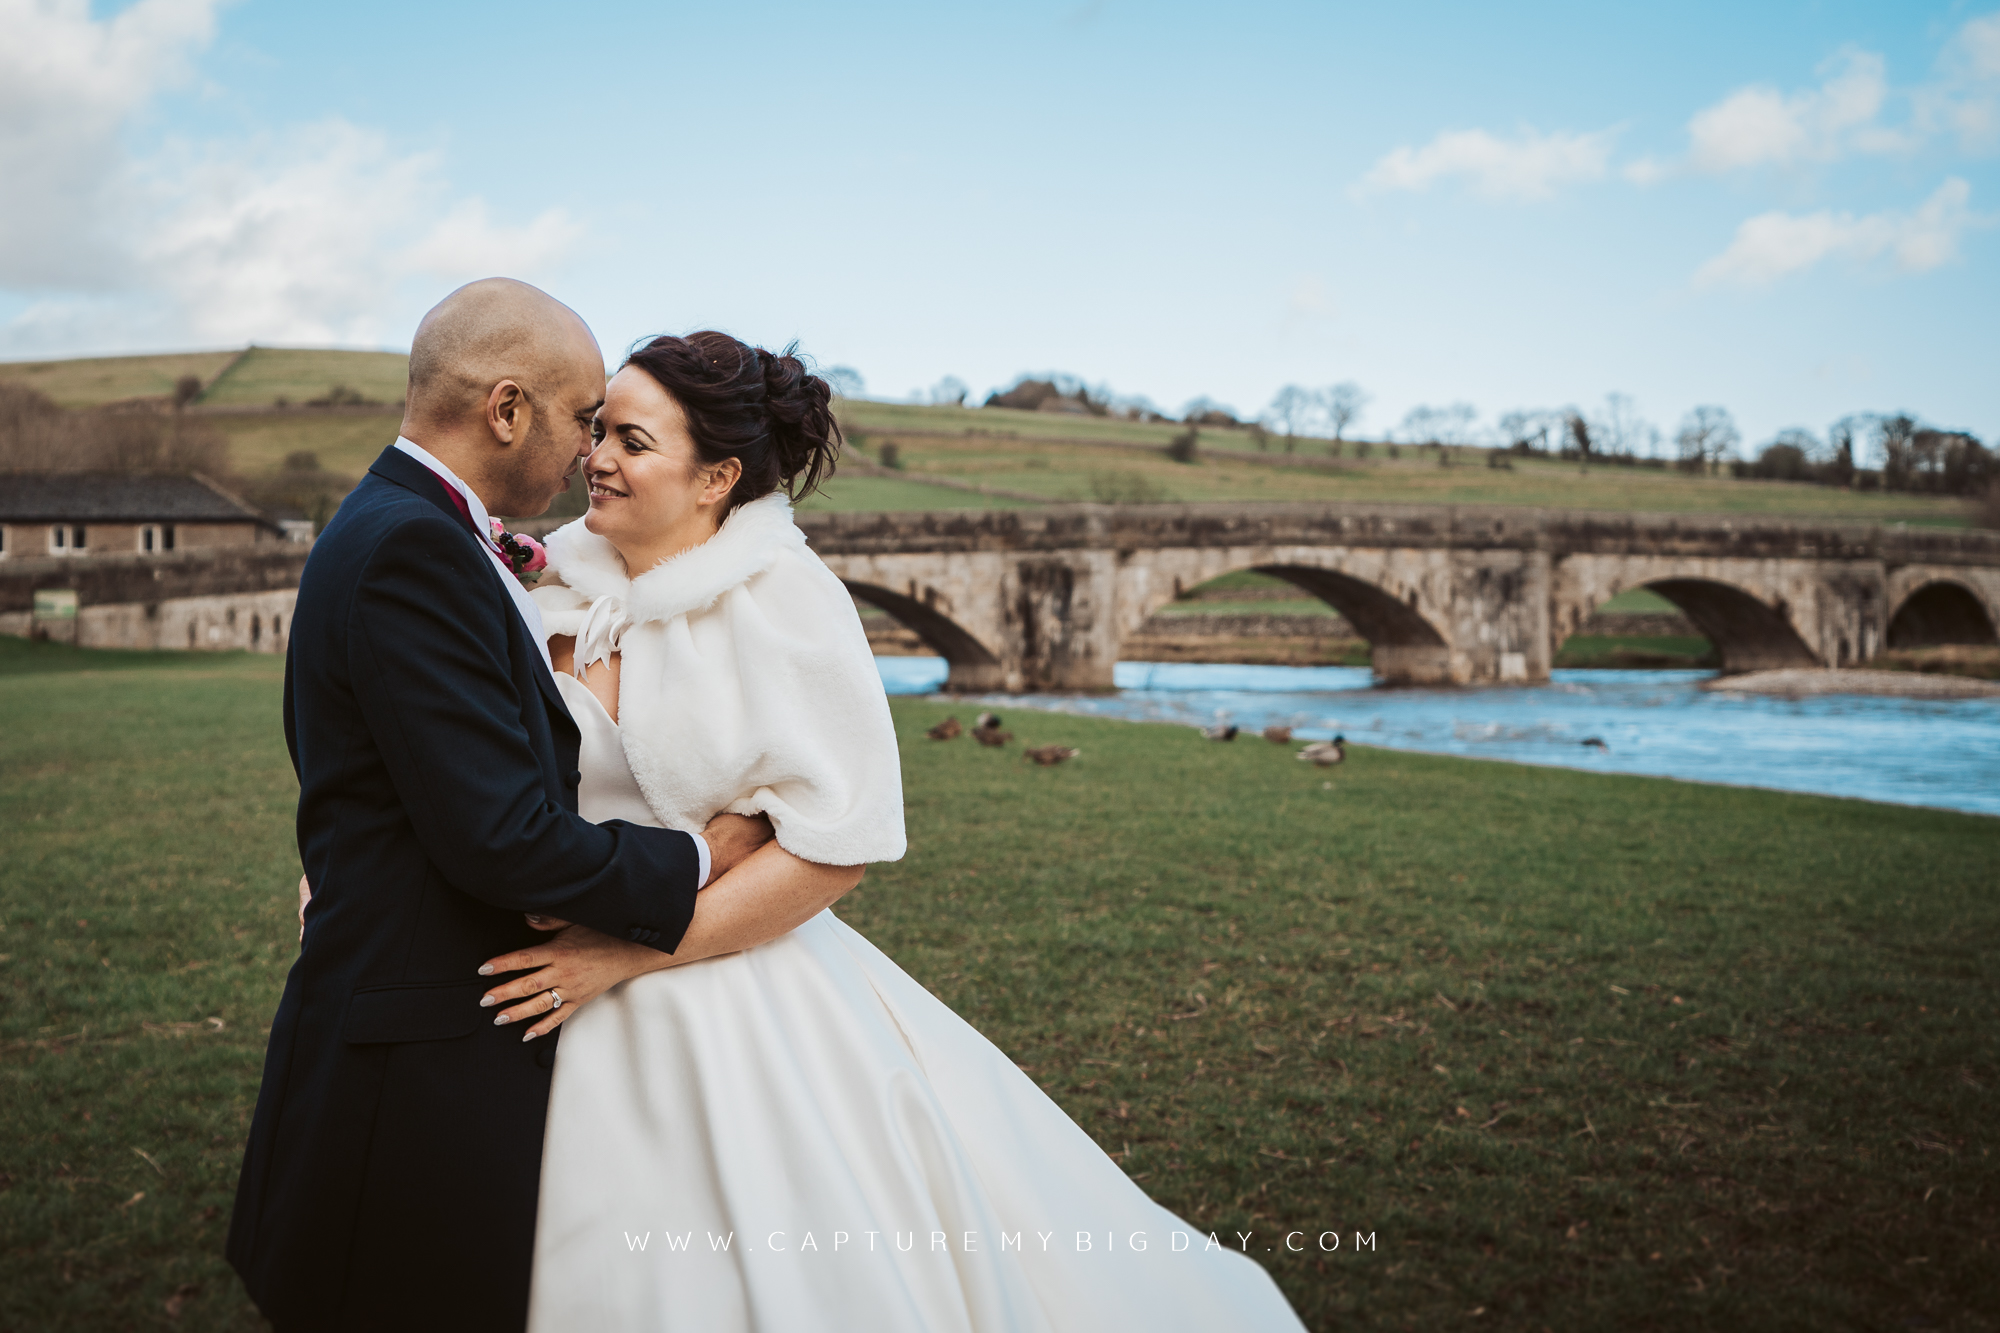 bride and groom by river with ducks